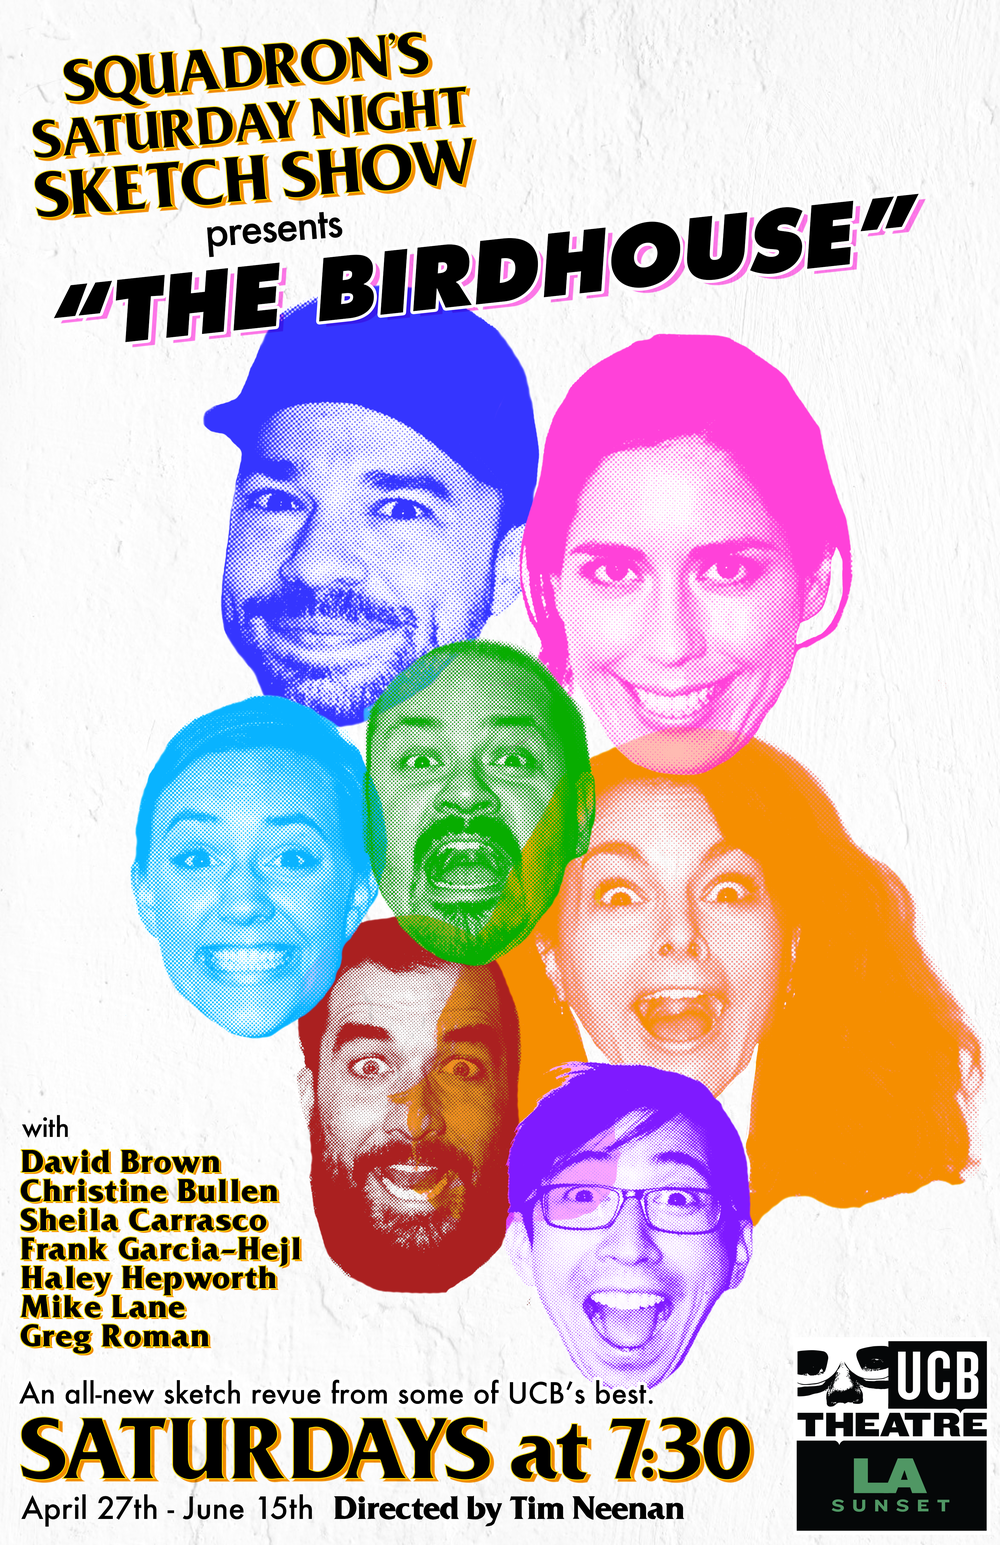 """Come see SQUADRON's all new sketch revue """"The Birdhouse"""" Saturdays at 7:30pm April 27th-June 15th! Purchase tickets here:  https://sunset.ucbtheatre.com/performance/68397"""